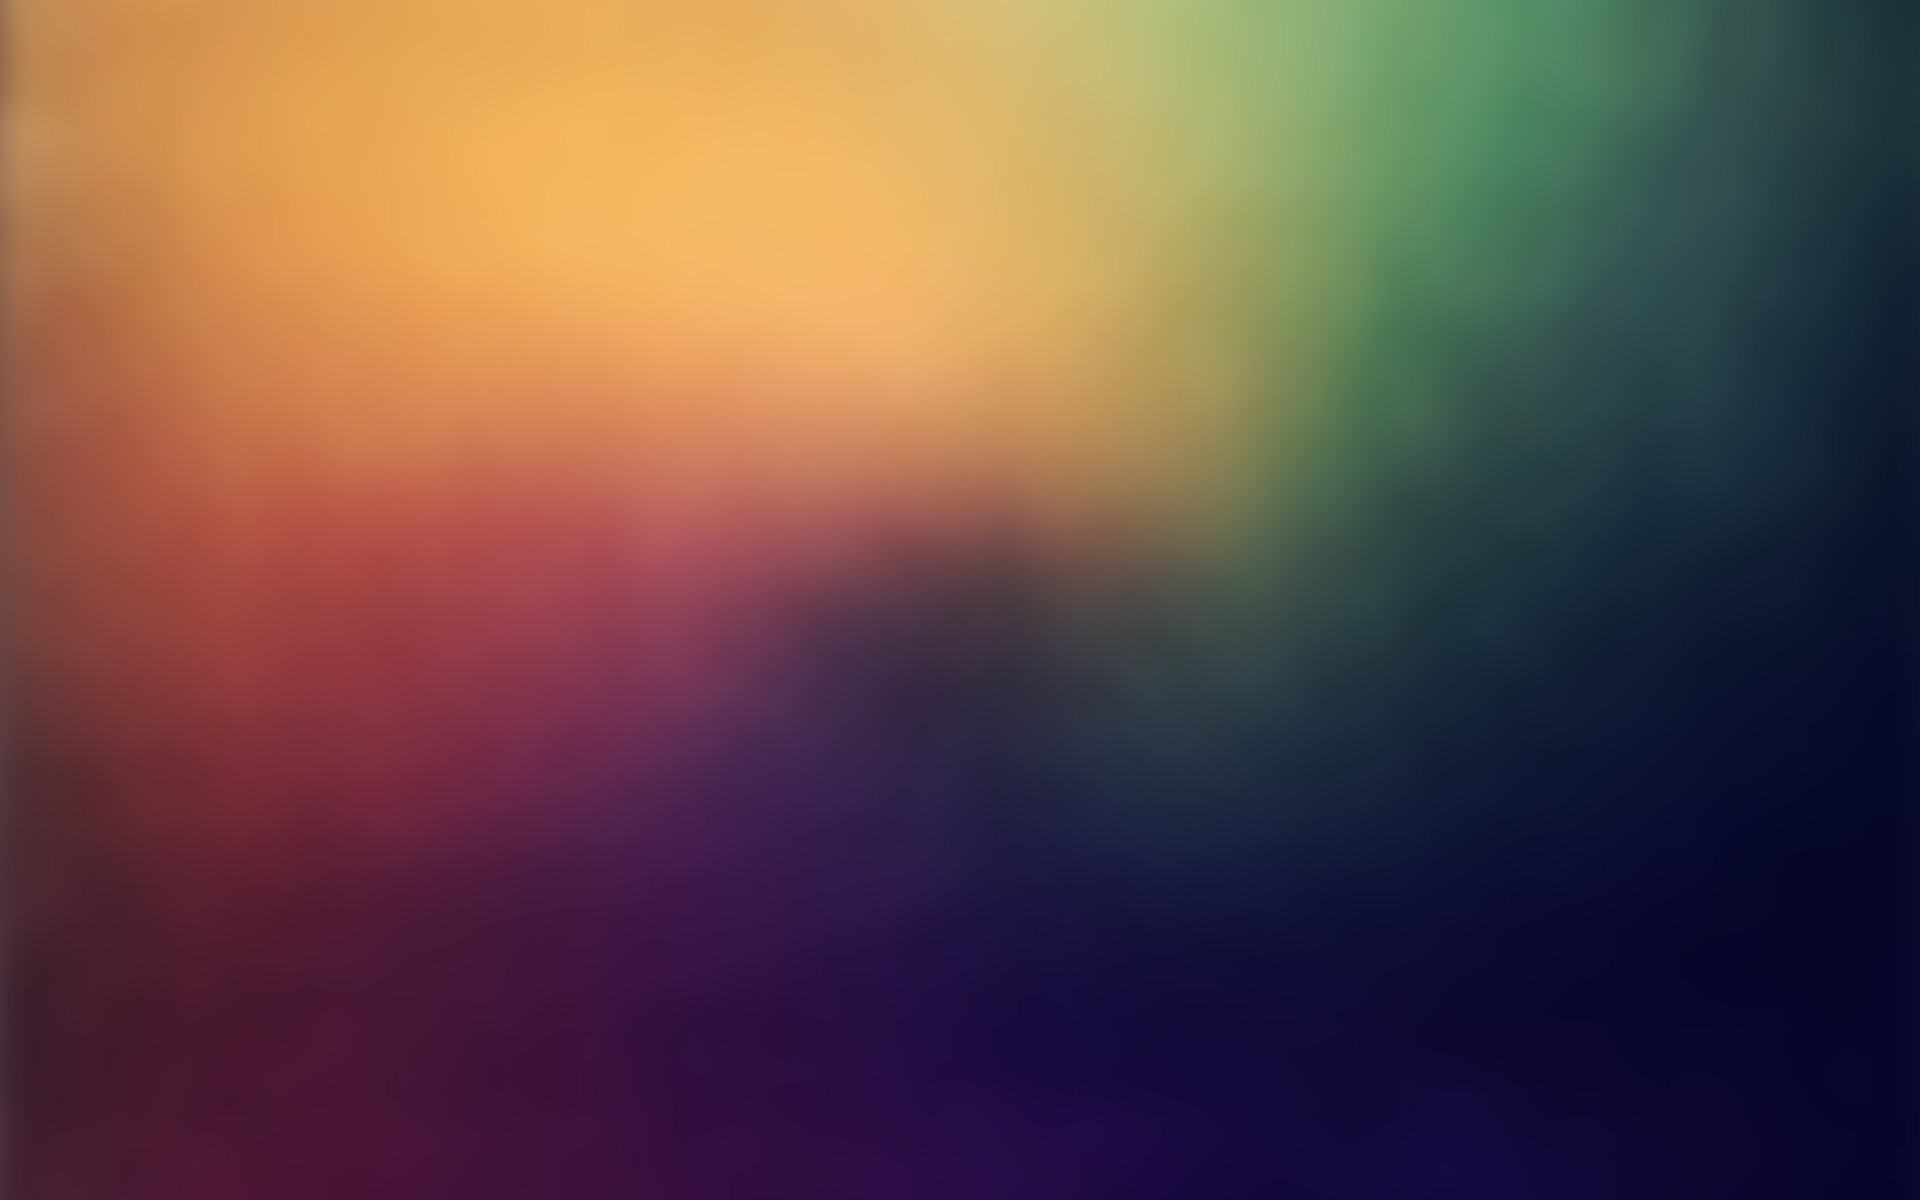 A Collection Of Backgrounds (513)